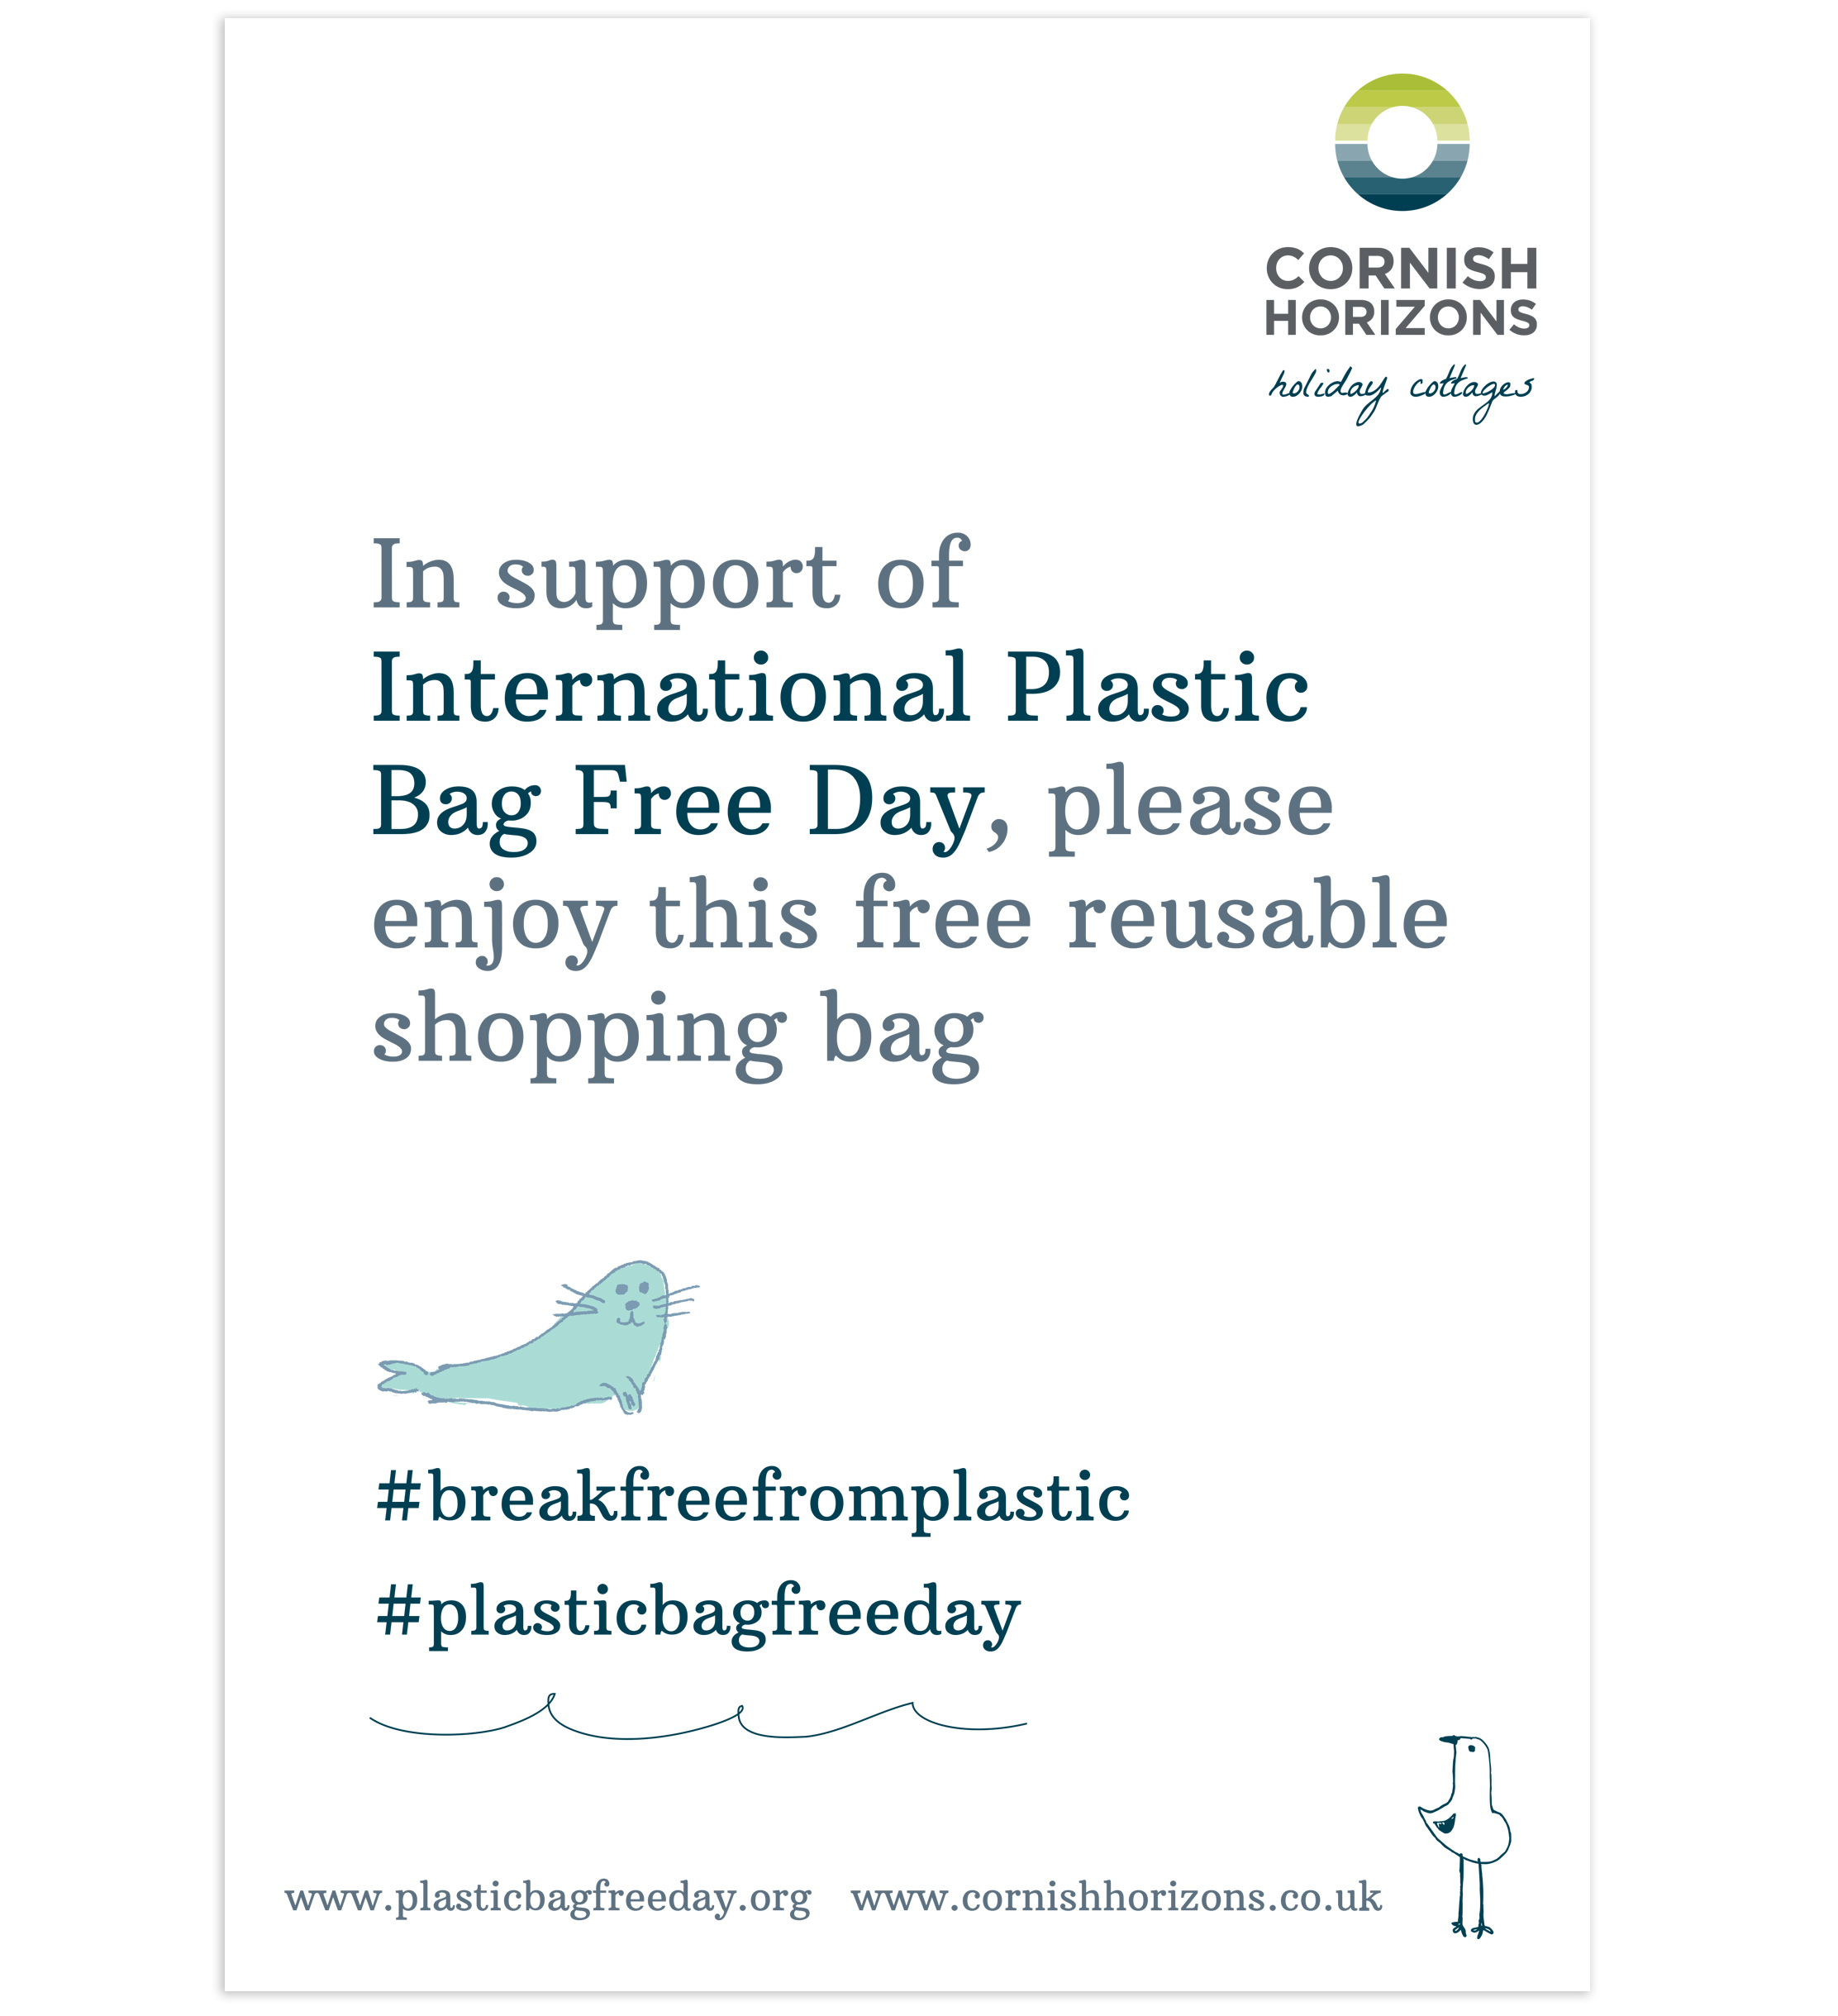 Plastic Bag Free Day advertising by Pickle Design for Cornish Horizons